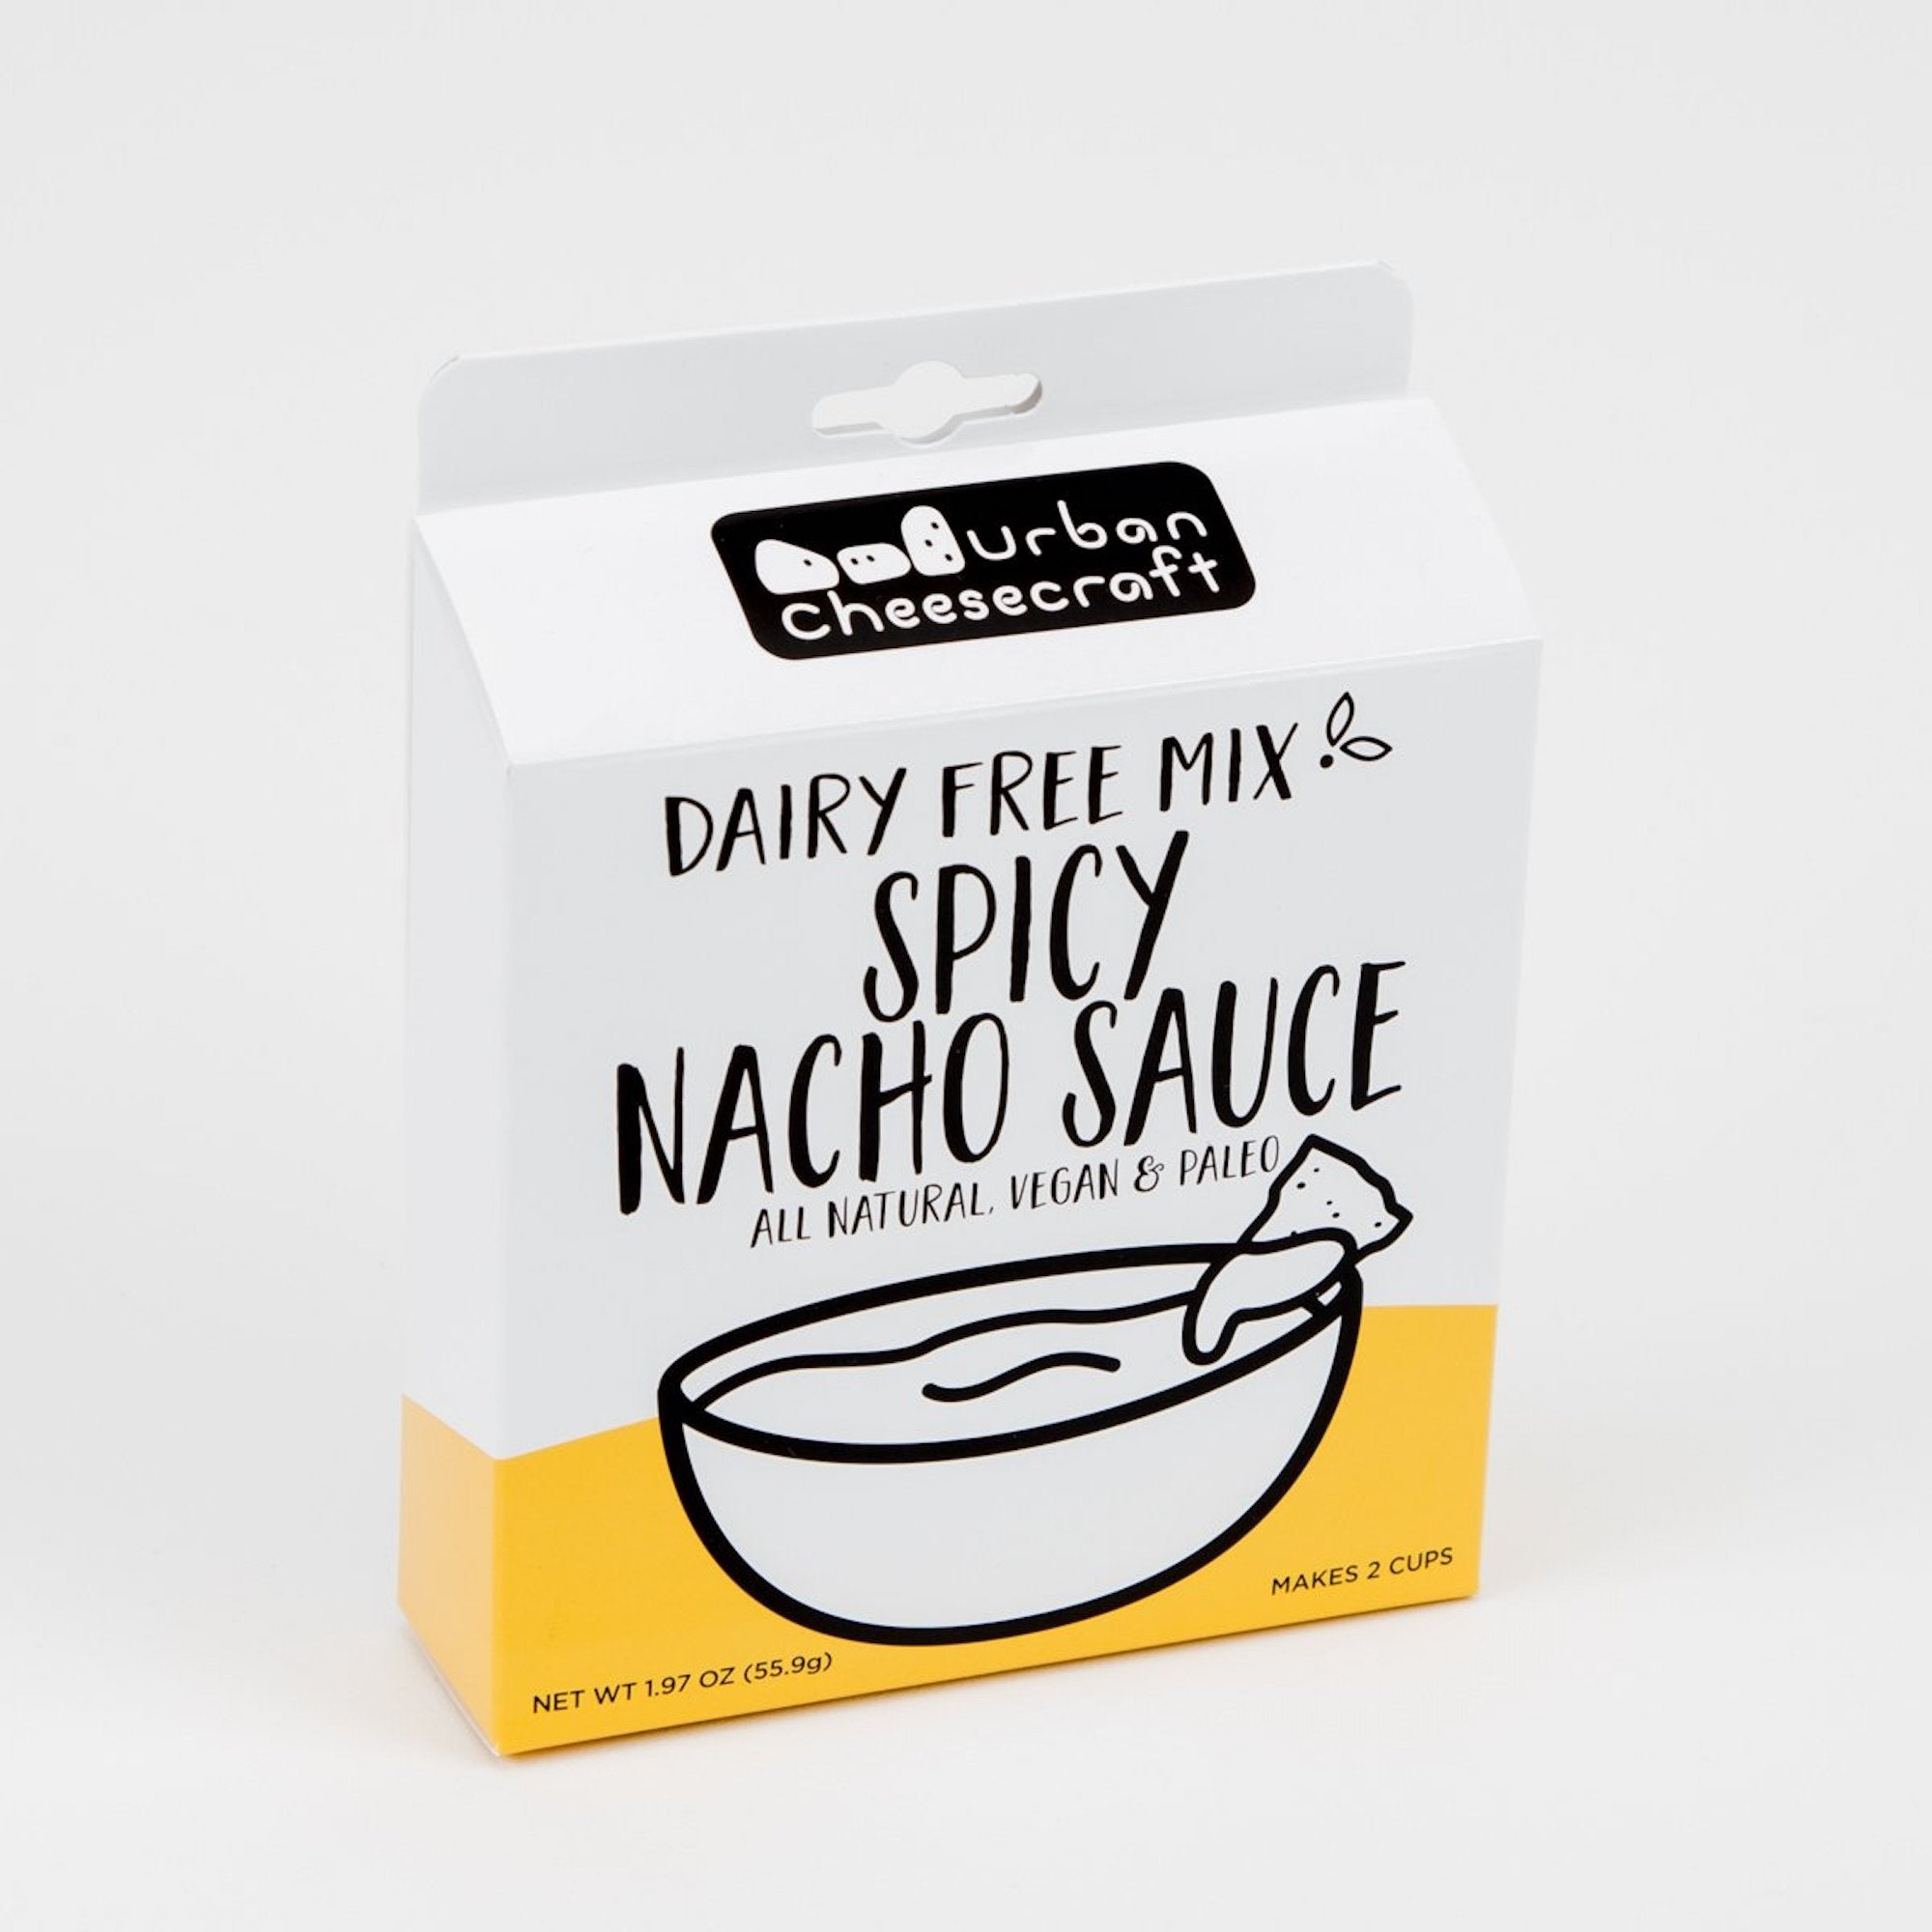 Dairy Free, Vegan, Paleo Cheese Sauce Mix - Spicy Nacho